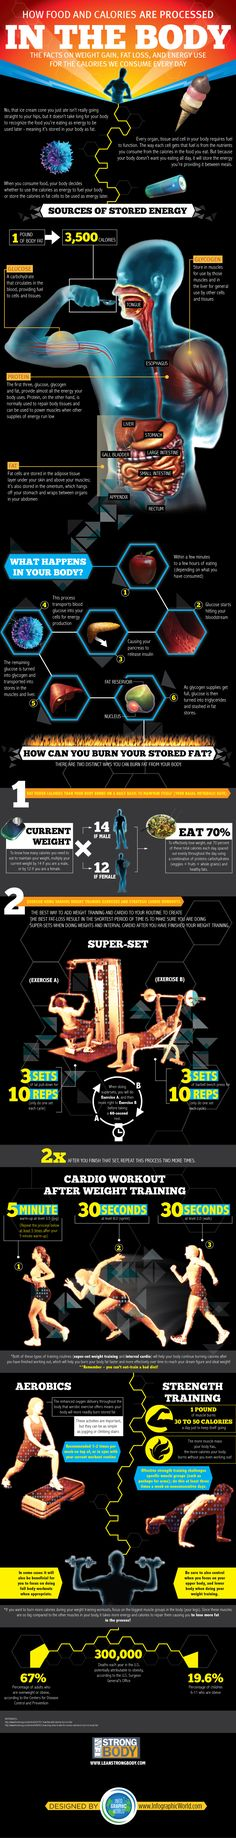 How Food and Calories Are Processed In The Body! Discover how to burn your stored fat! #Infographic #Infographics